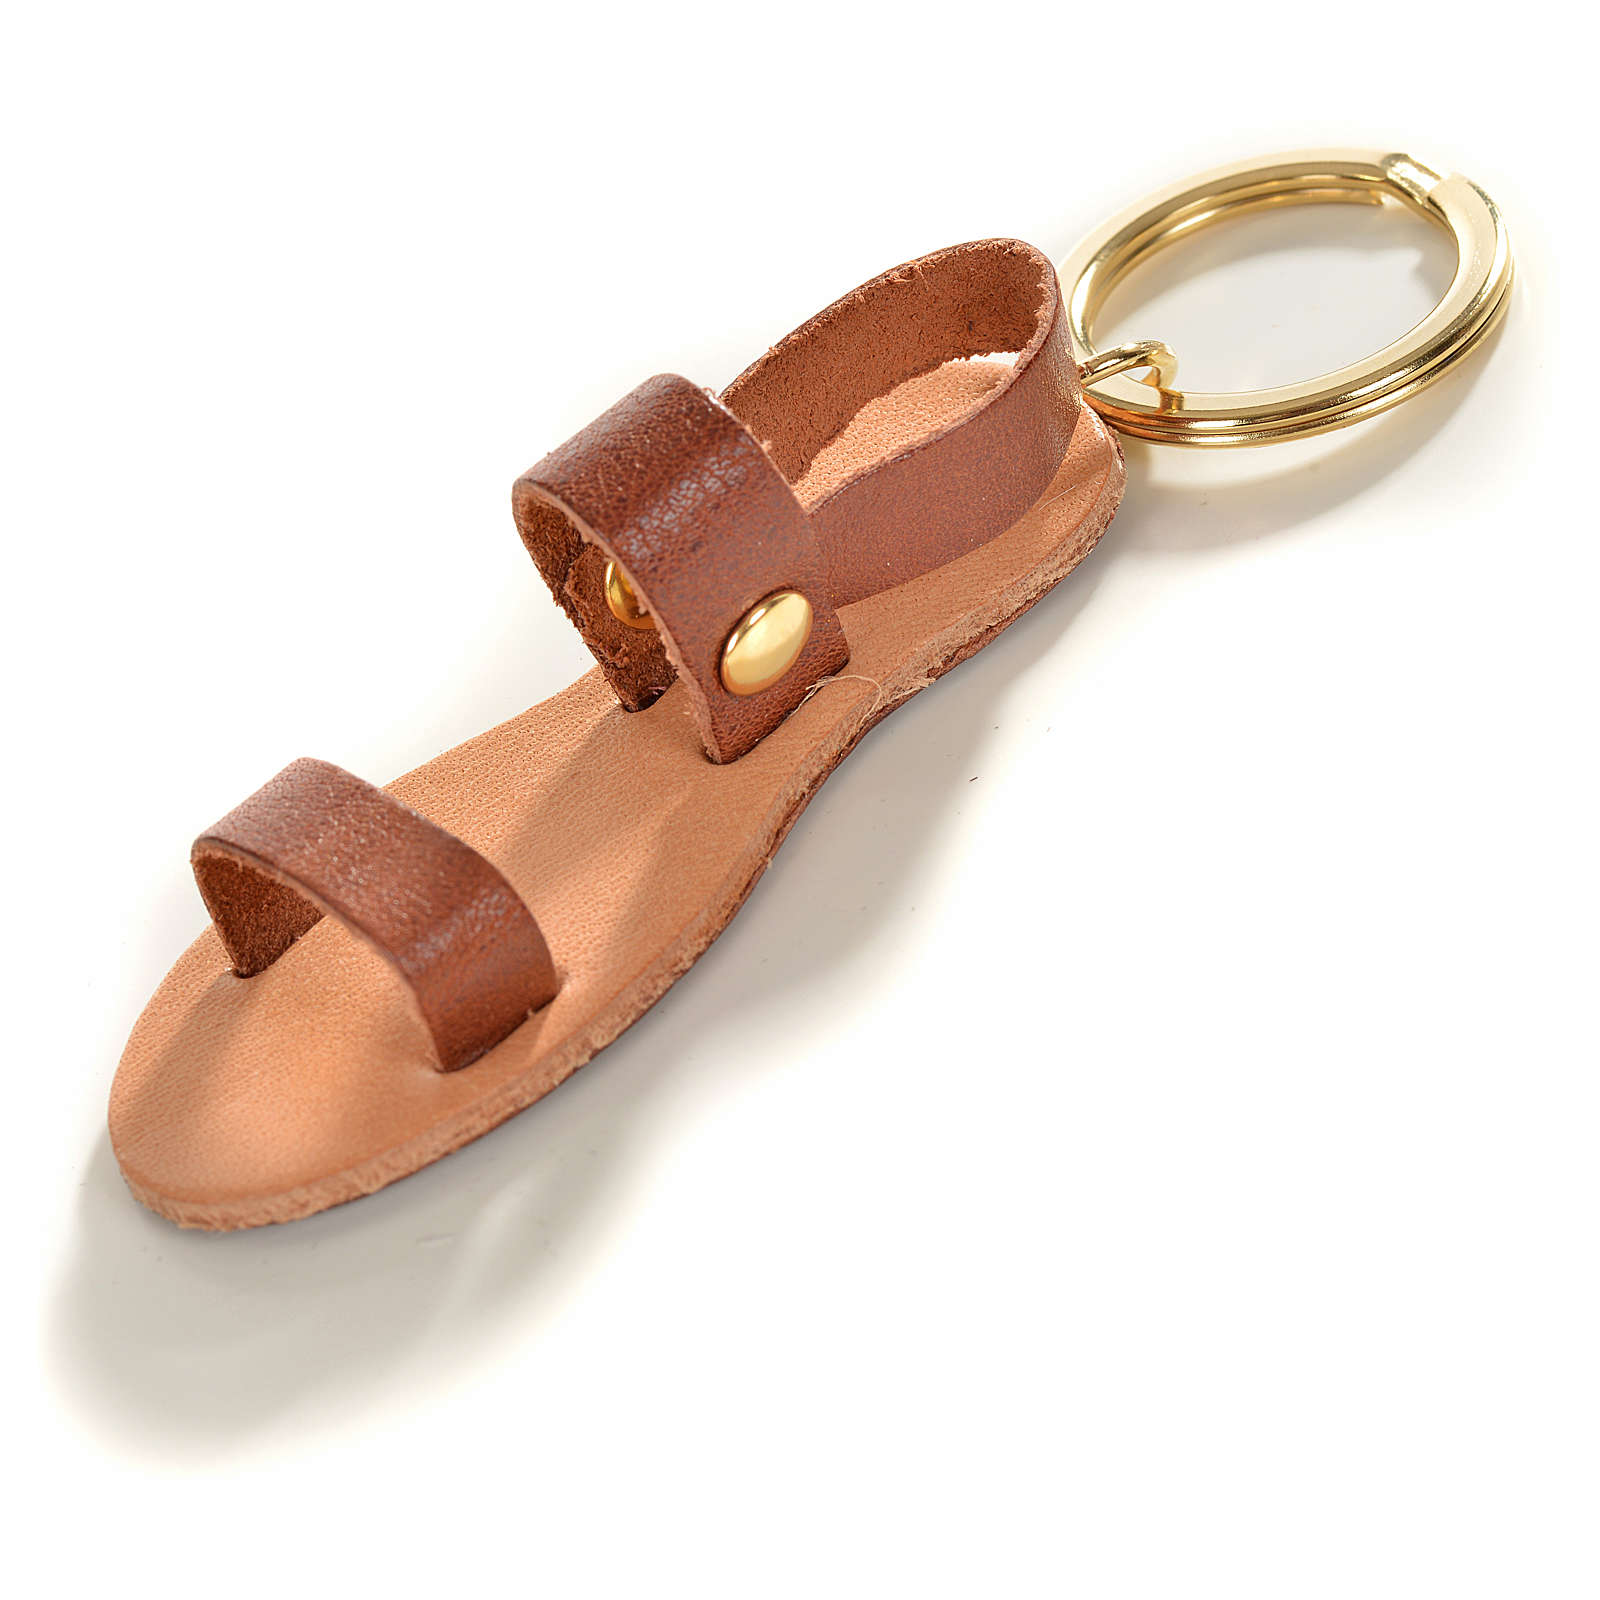 Franciscan sandals keychain in real leather 3